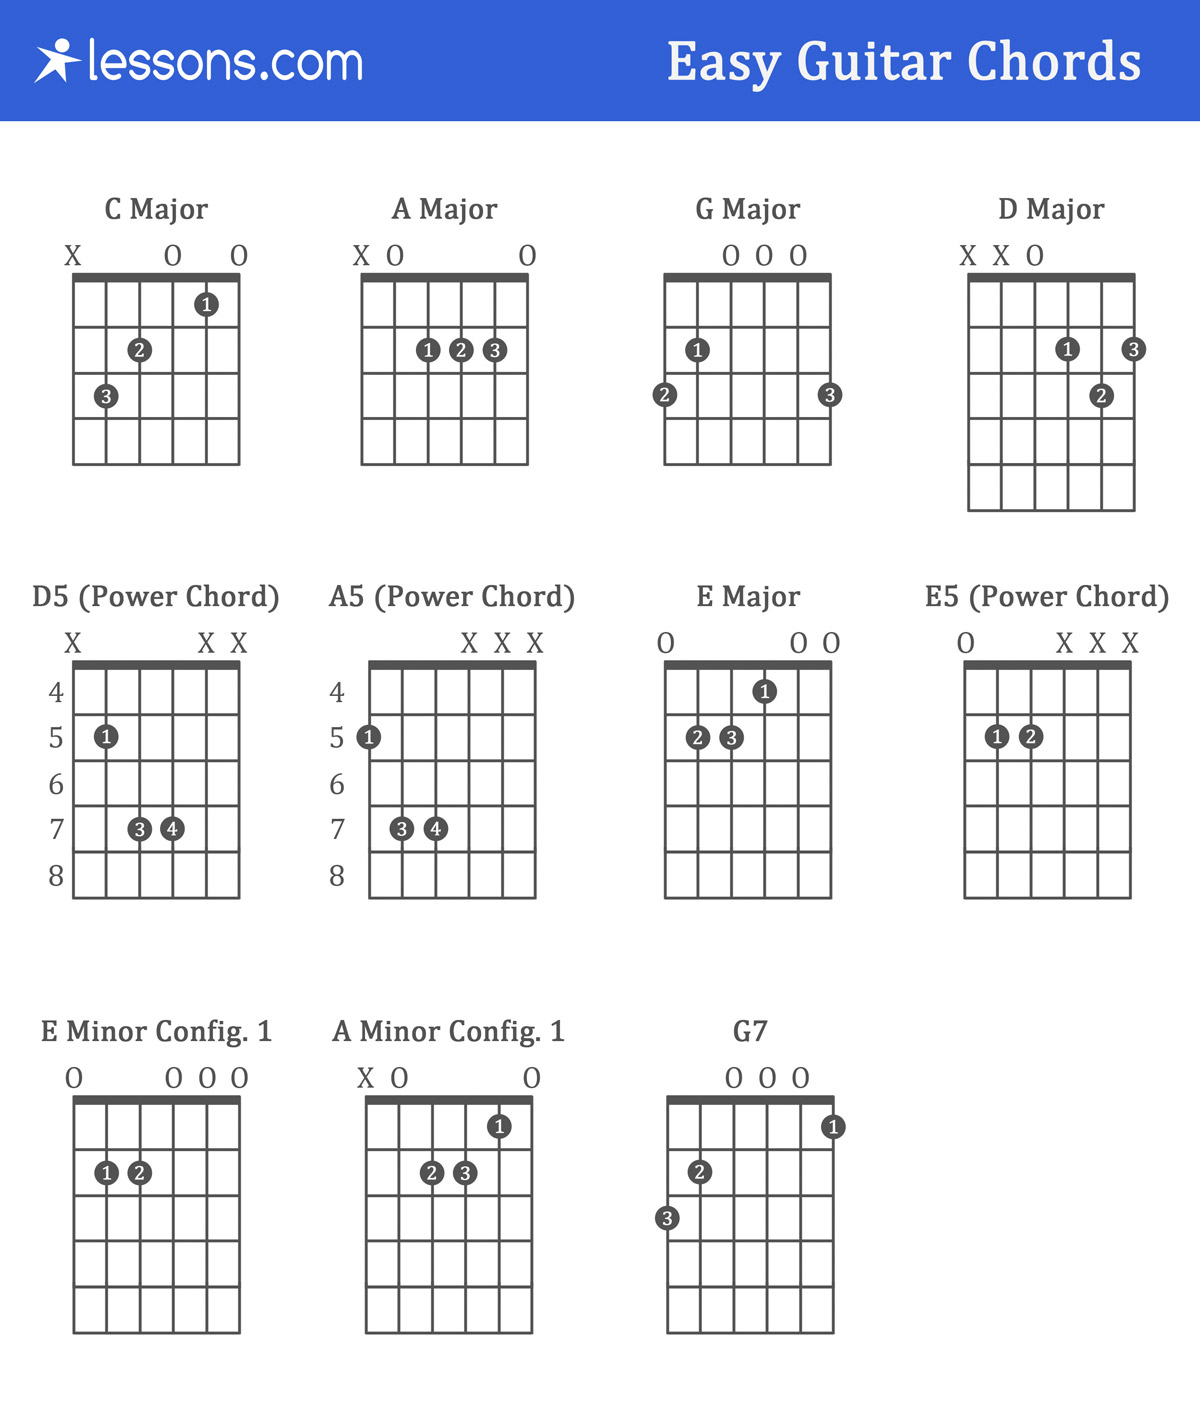 Guitar Chord Tabs: The 11 Easy Guitar Chords For Beginners (with Charts